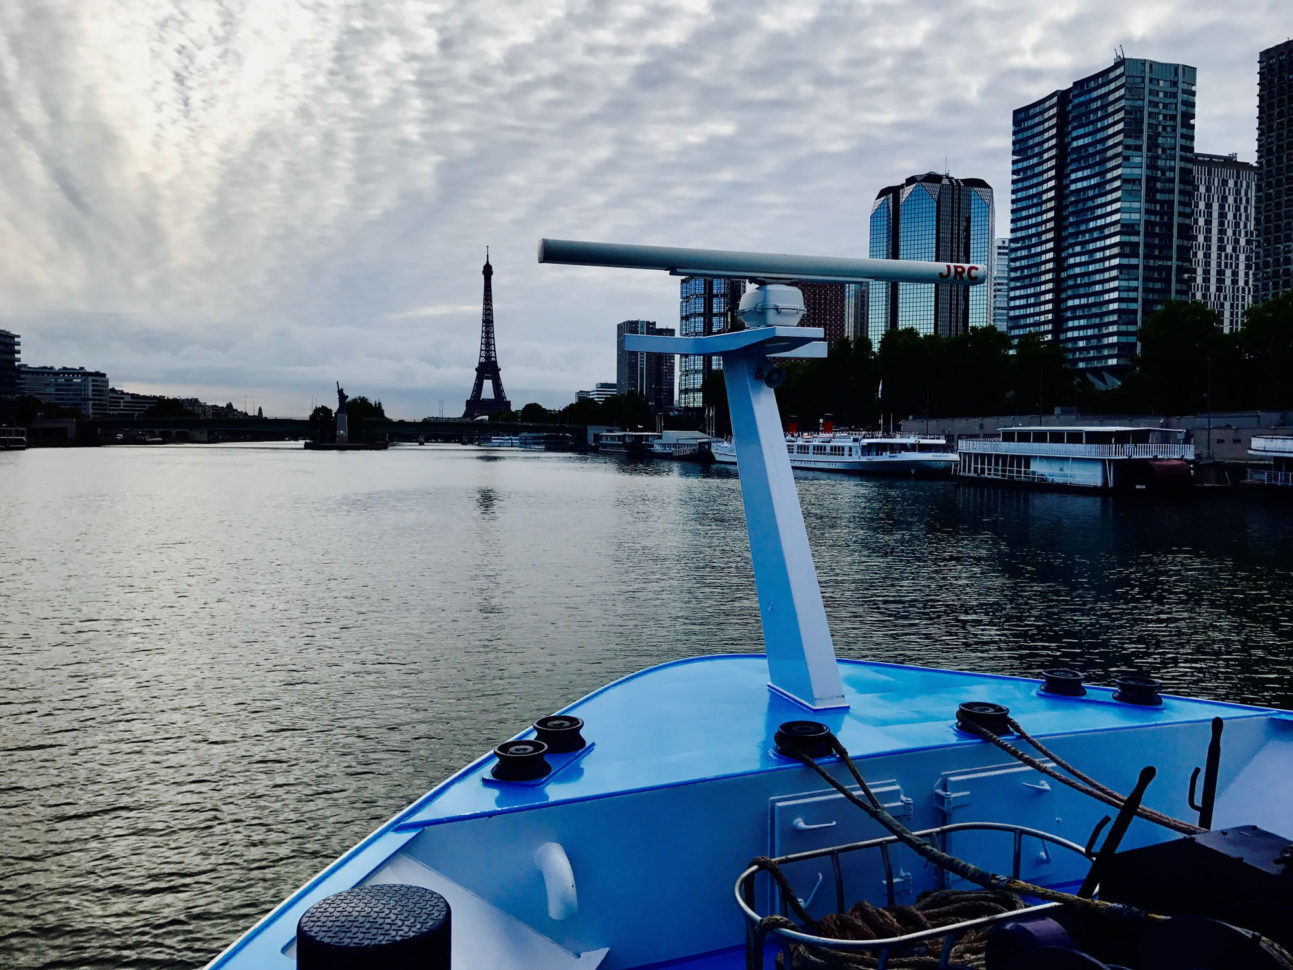 Cruise Comparison Spreadsheet For Seine River Cruise Peak Season Price Comparisons 2019 Update